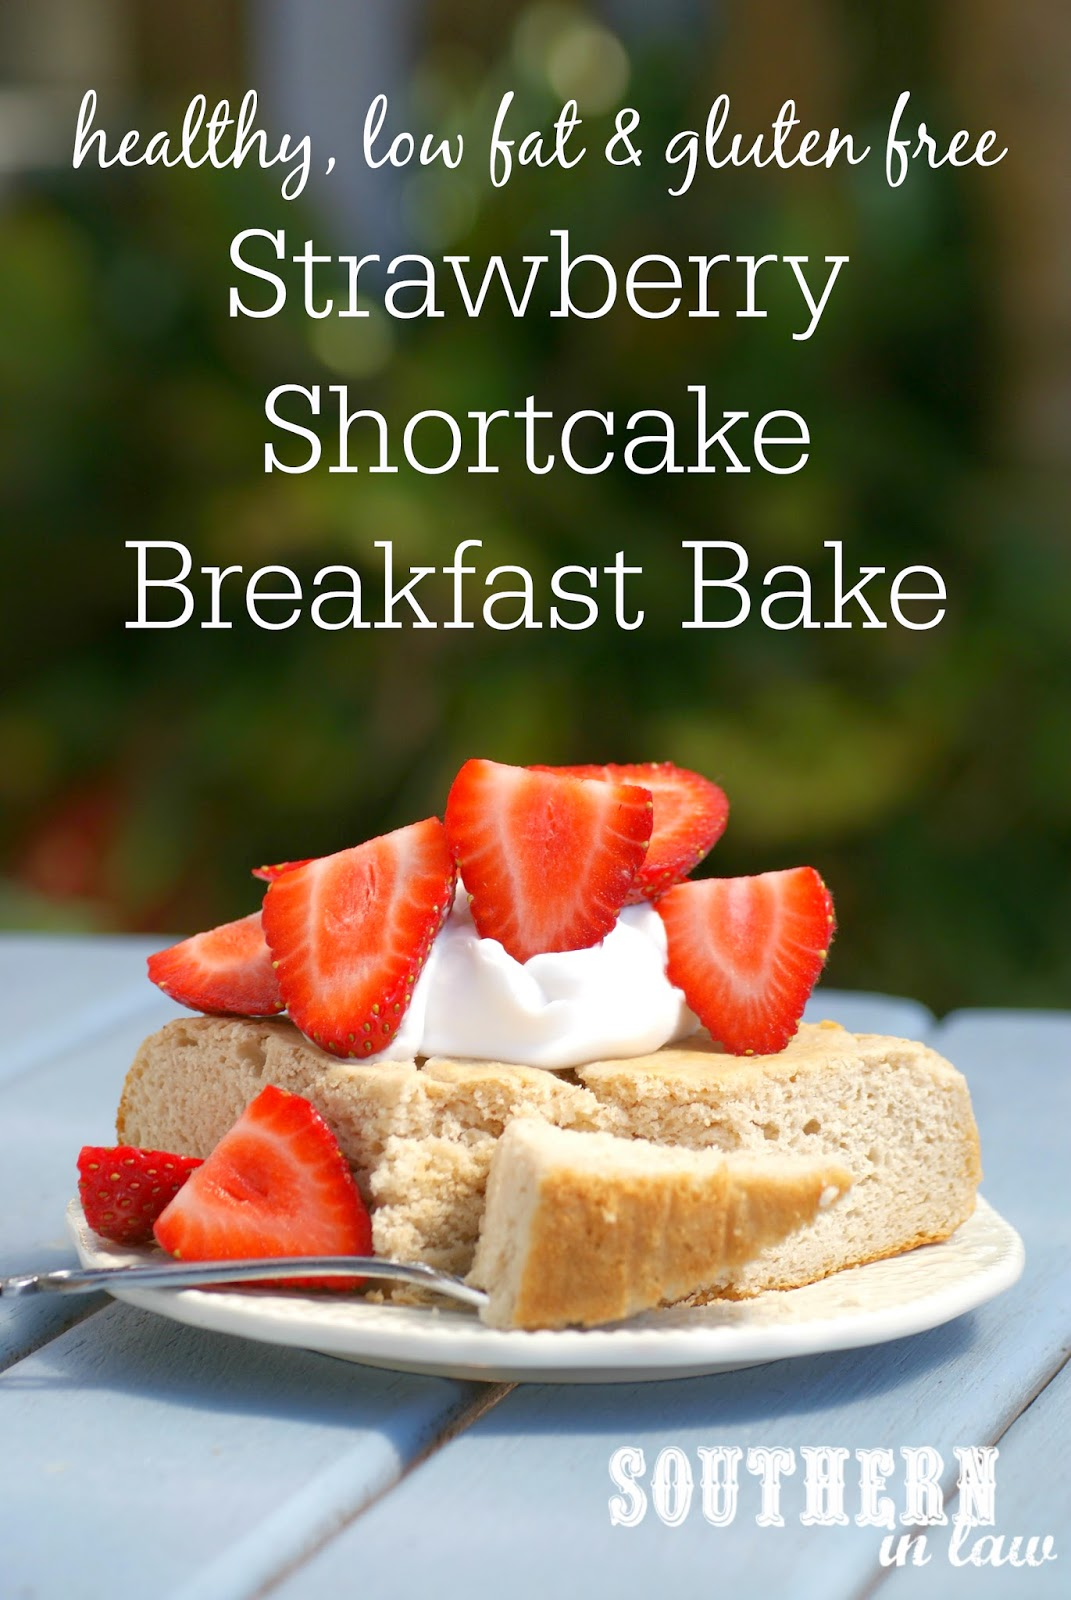 Strawberry Shortcake Breakfast Bake